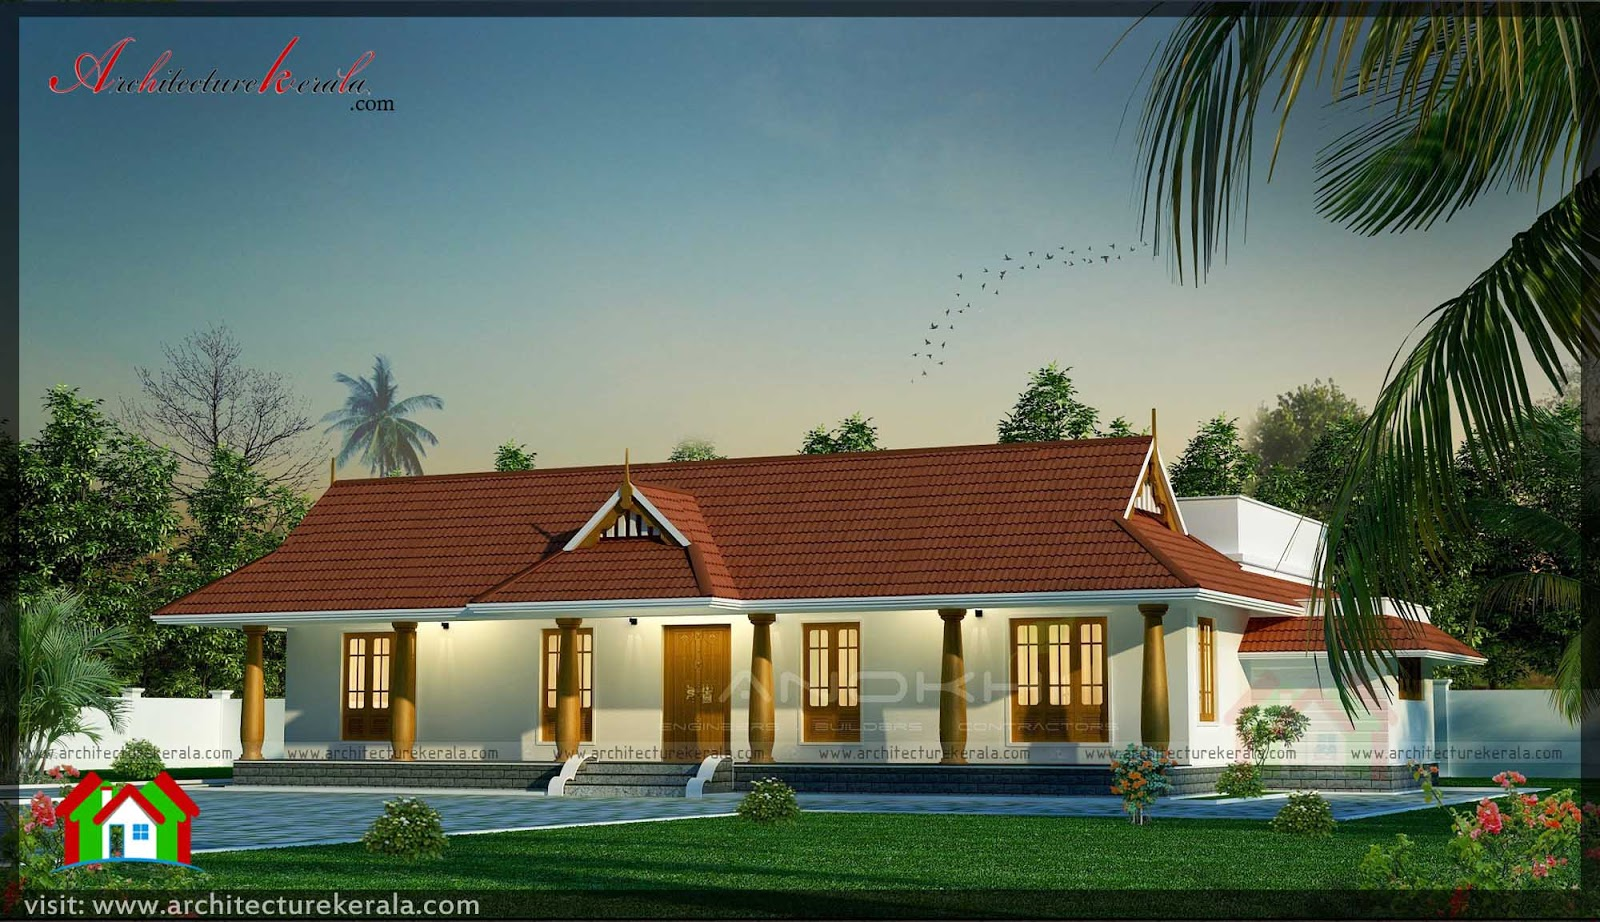 Kerala style house with nadumuttam architecture kerala for Kerala house photos